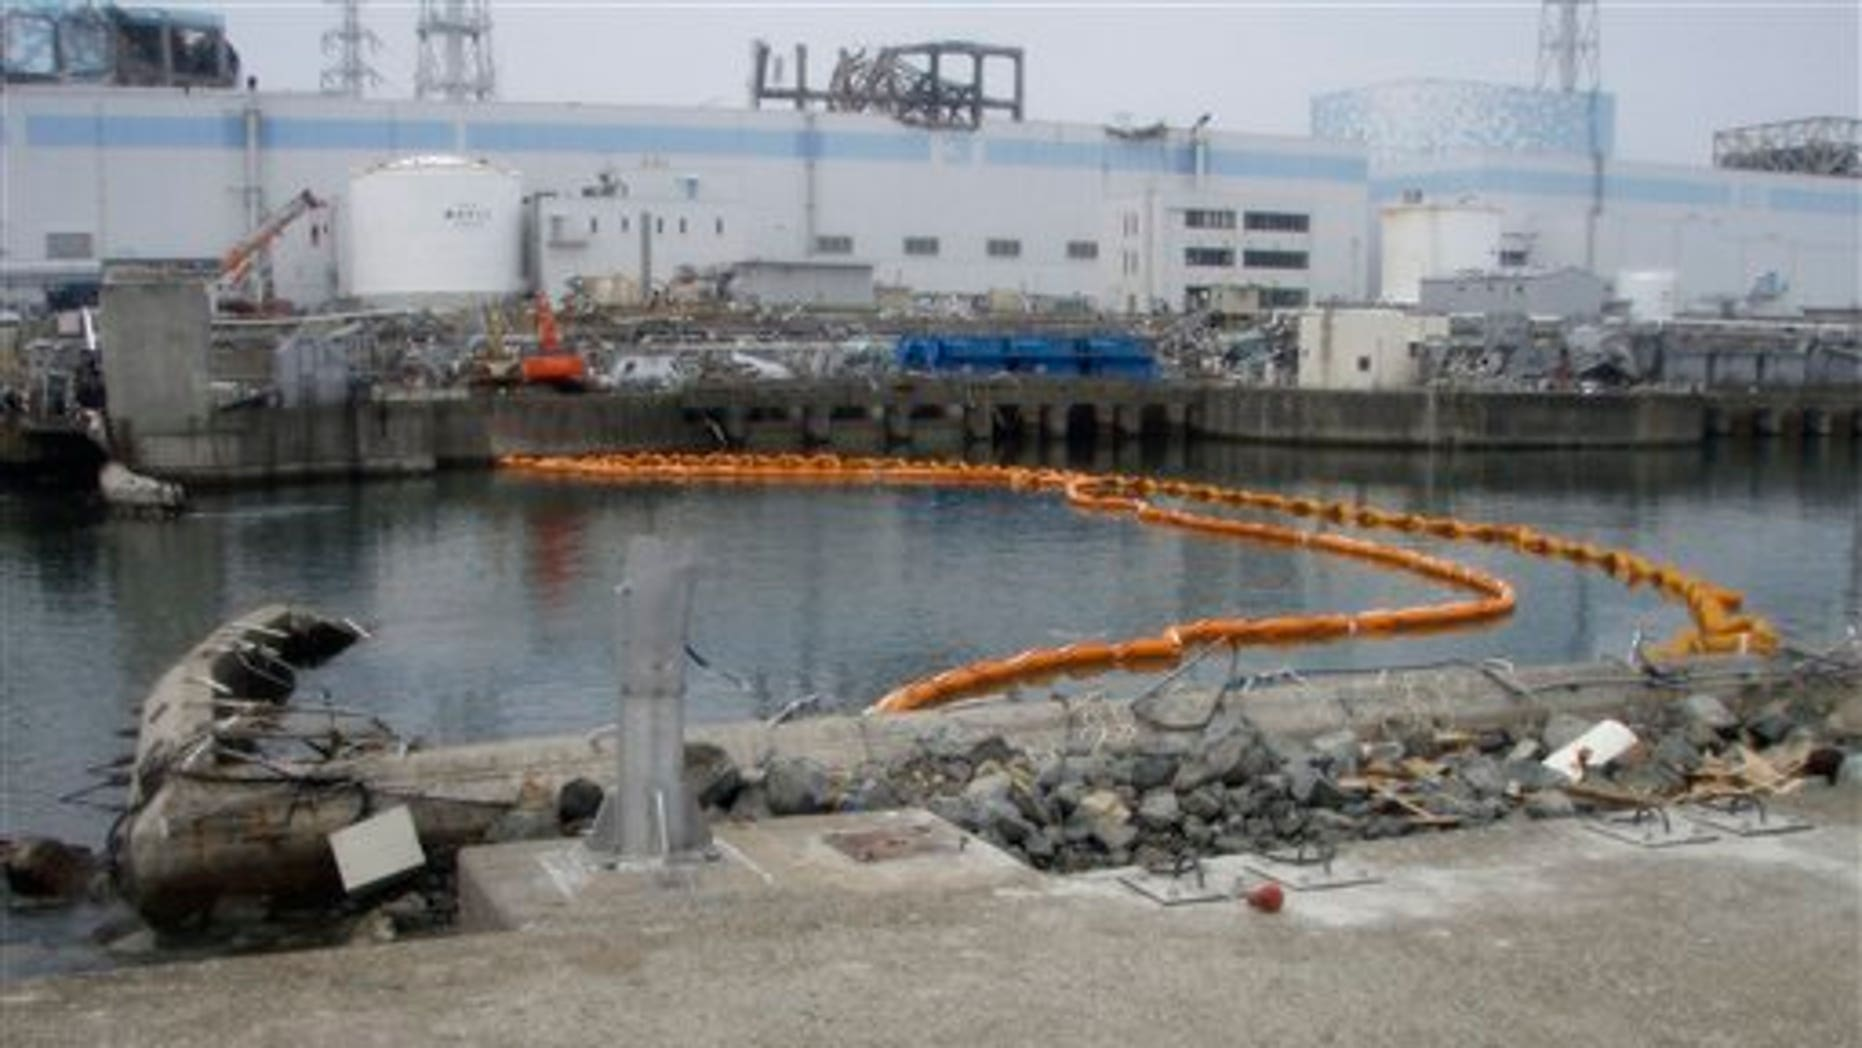 """This Sunday, April 10, 2011 photo released by Tokyo Electric Power Co. (TEPCO) shows orange colored floats suspending a """"silt fence"""" that was installed under water to help prevent contaminated water from spreading outside the Fukushima Dai-ichi nuclear power plant's bay. The tsunami-crippled nuclear complex is still leaking radiation after its cooling systems were knocked out by the March 11 tsunami (AP/TEPCO)"""